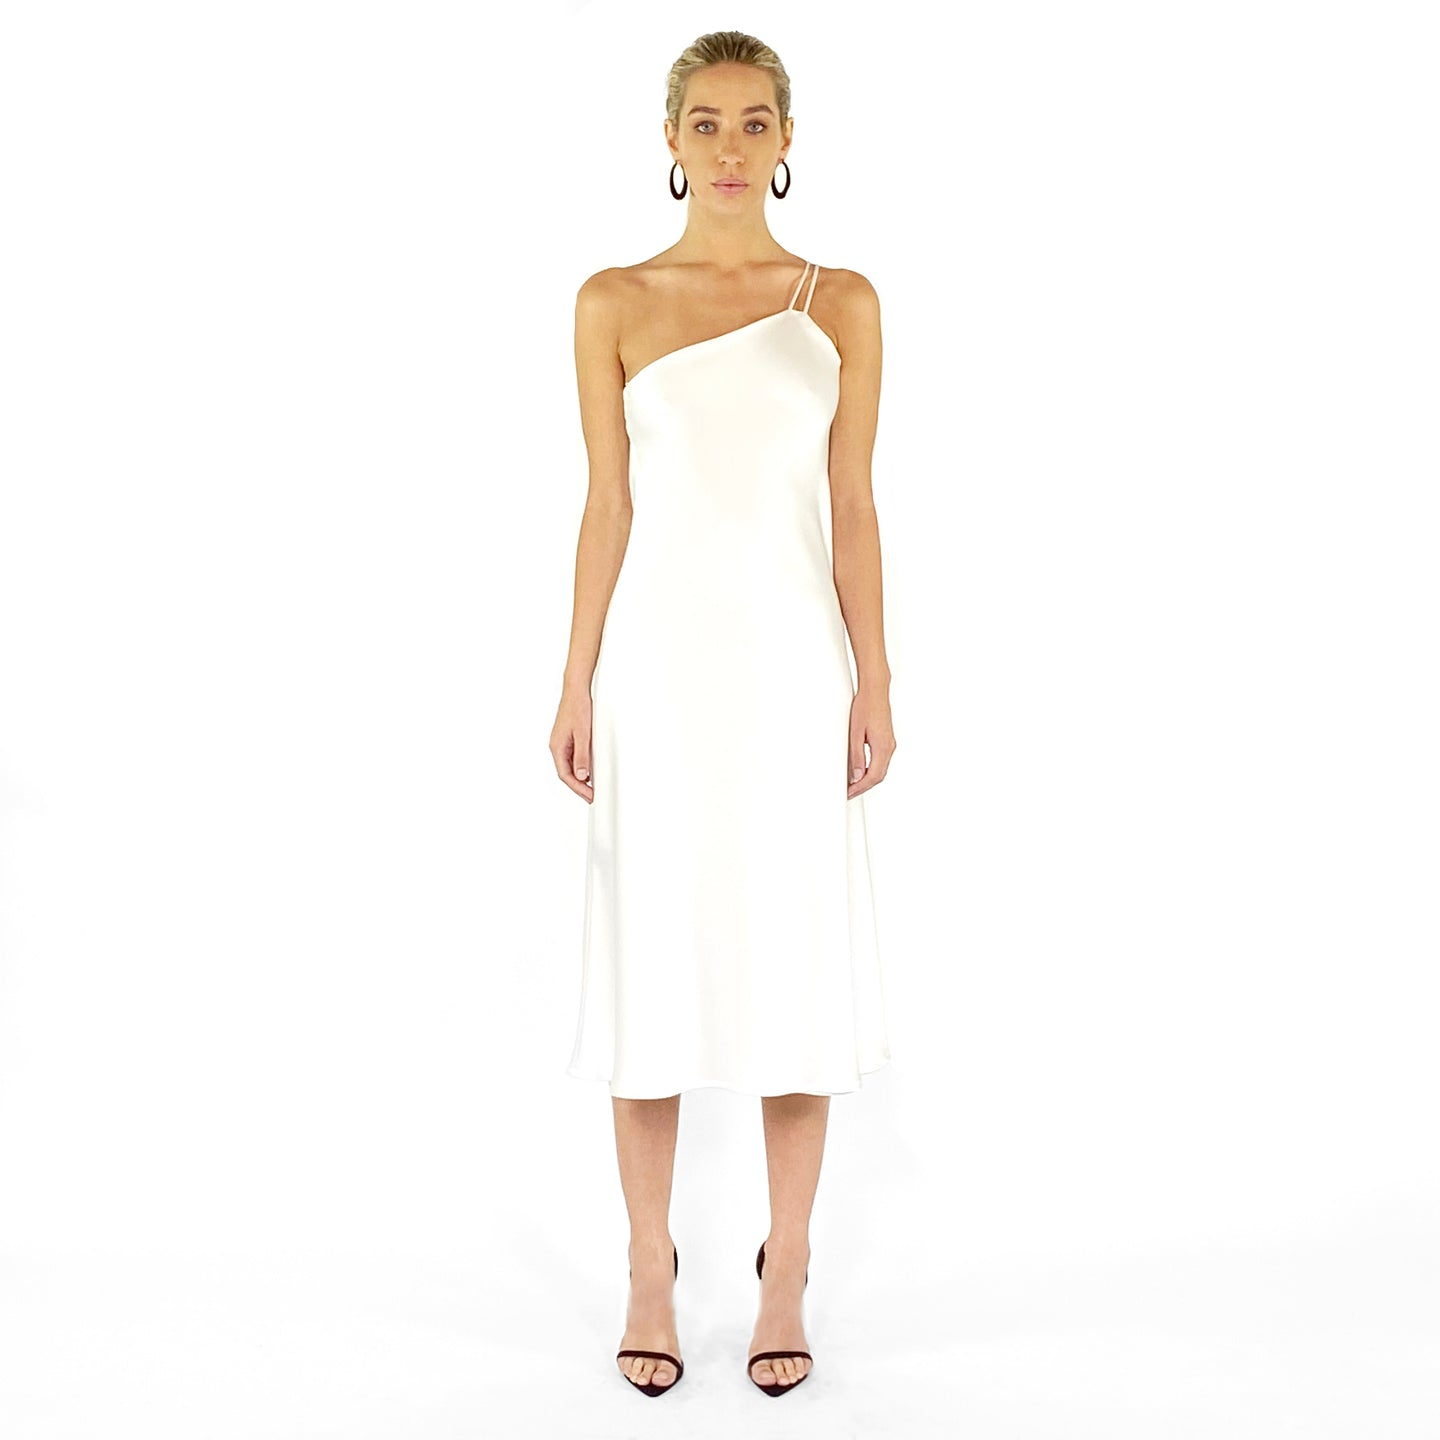 The Isla One Shoulder Slip Dress